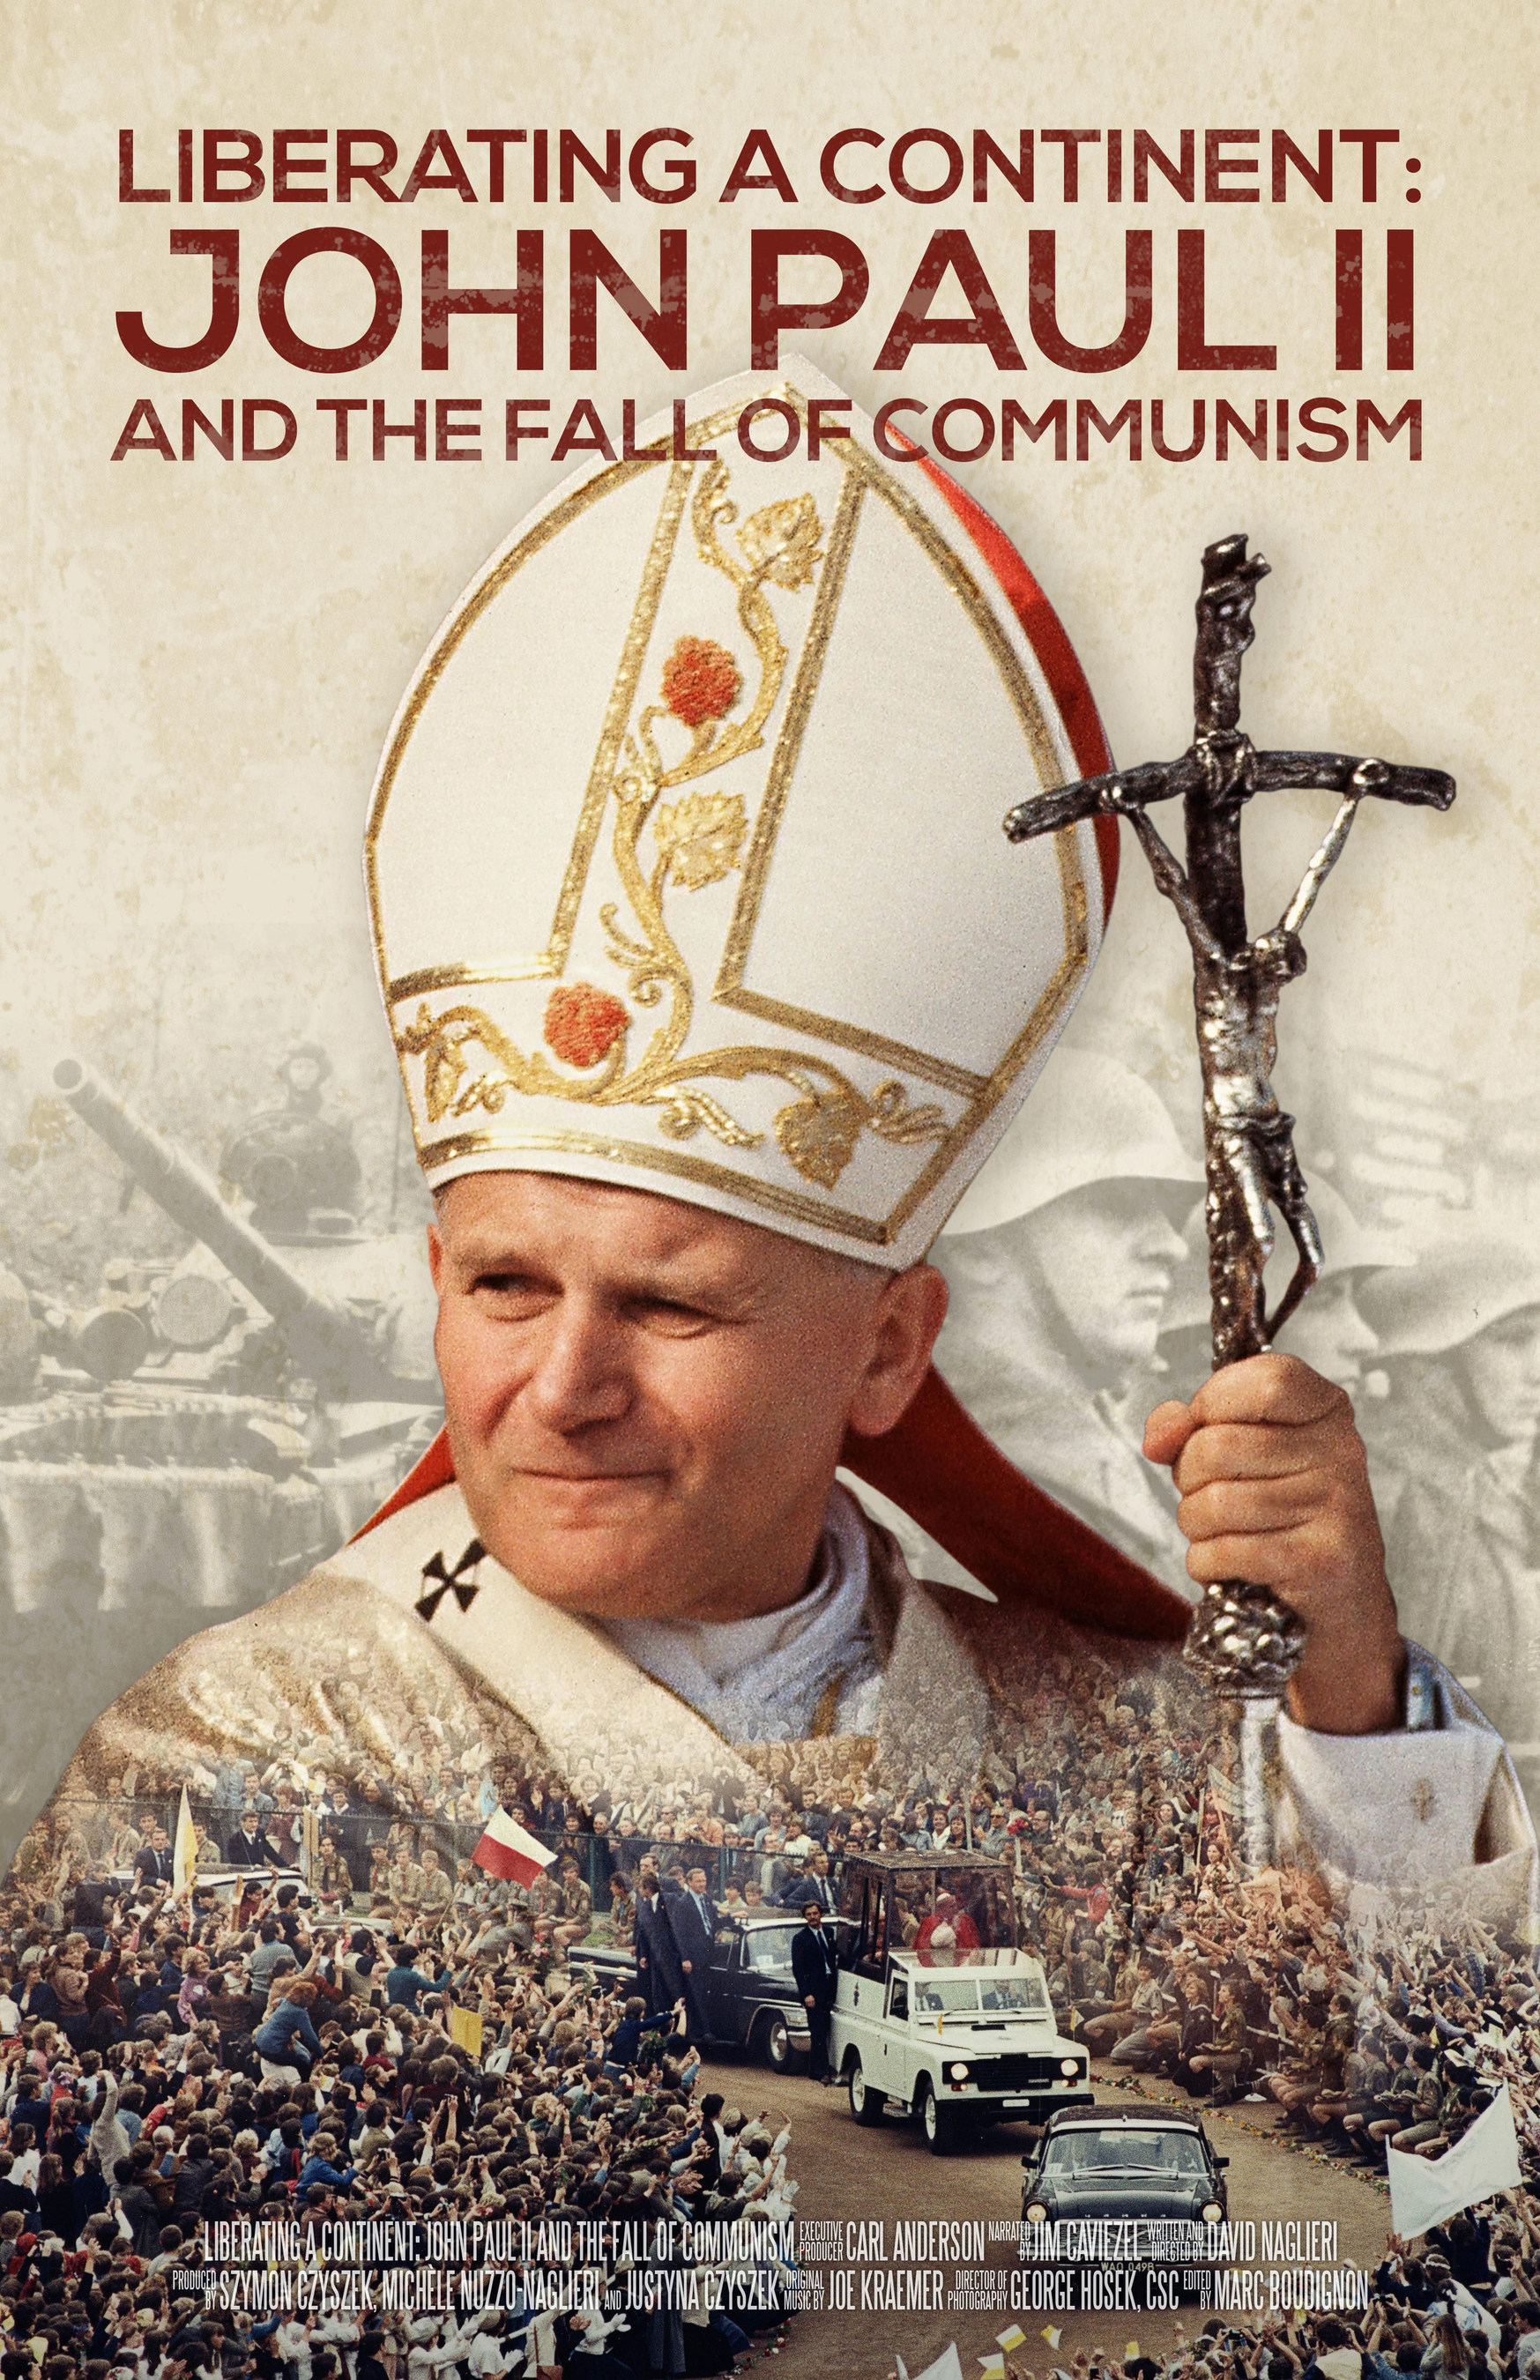 The National Academy of Television Arts and Sciences, Chicago/Midwest Chapter, nominates Liberating a Continent: John Paul II and the Fall of Communism for five Emmy awar